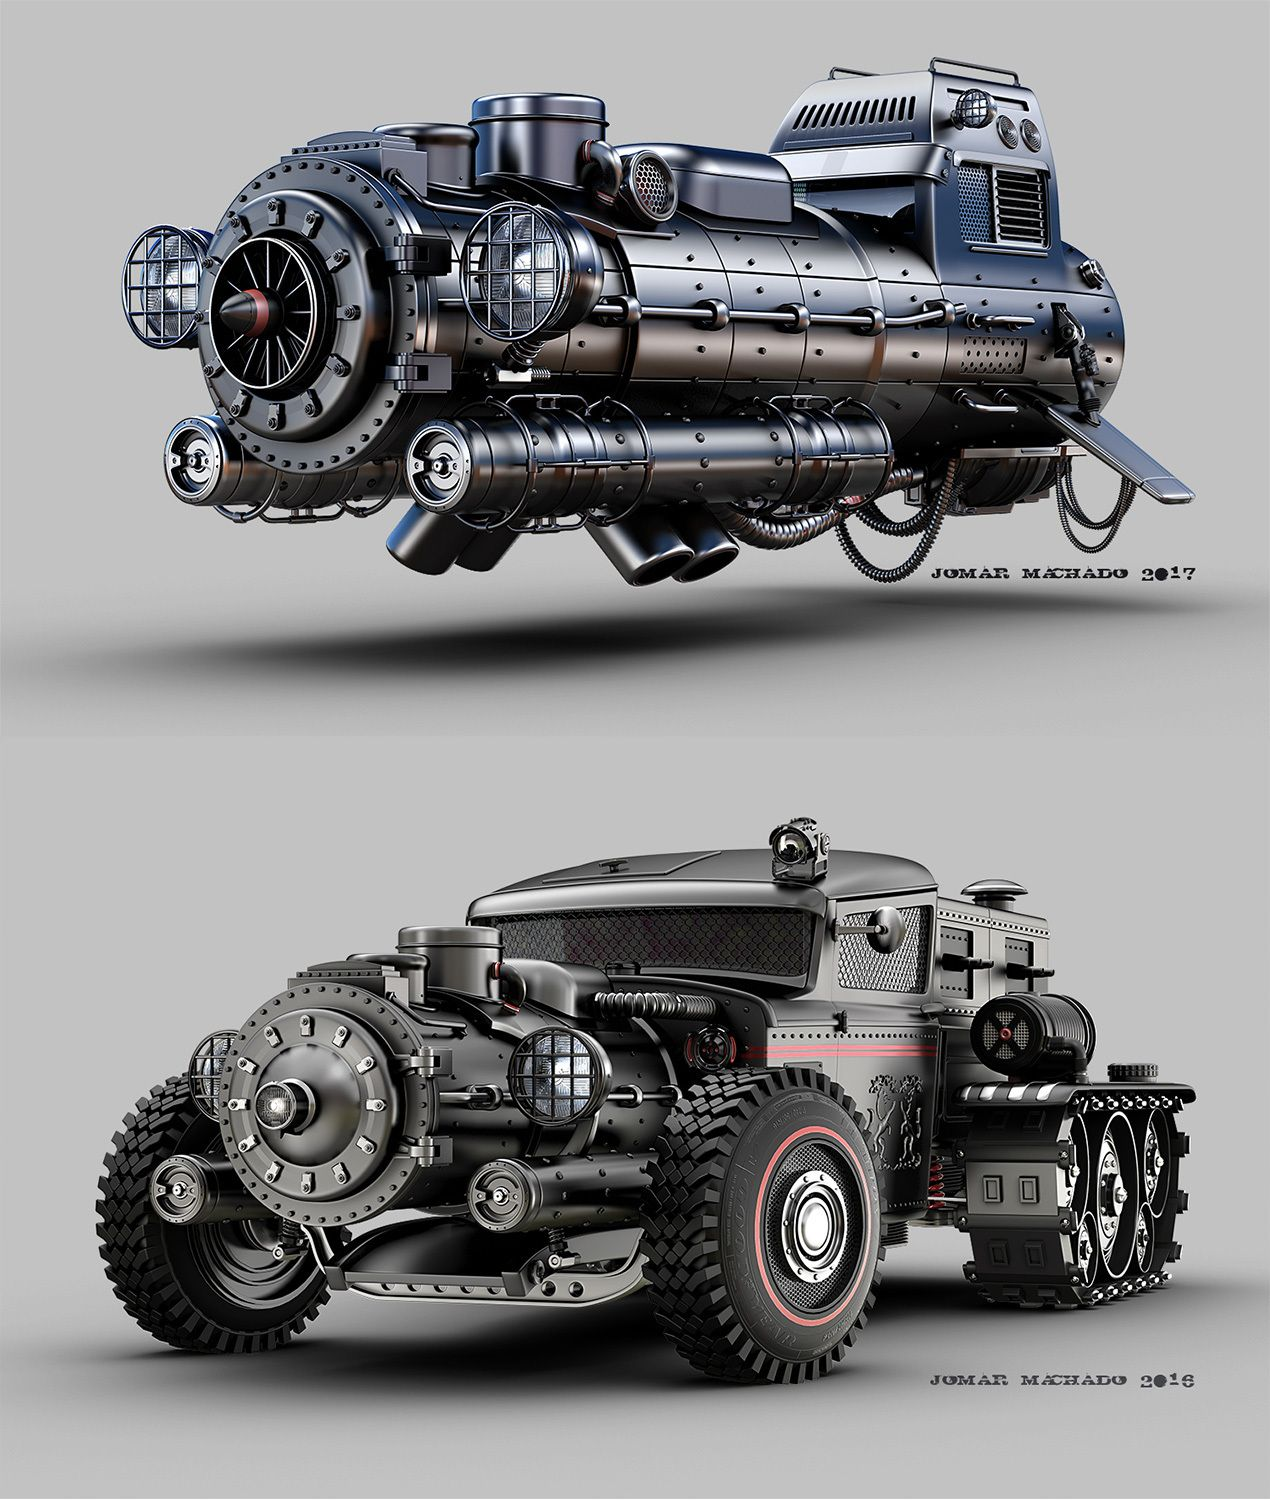 Take A Look At These Two Awesome Looking Steampunk Or Possibly Dieselpunk Vehicles Illustration By Jomar M Dieselpunk Vehicles Futuristic Cars Concept Cars